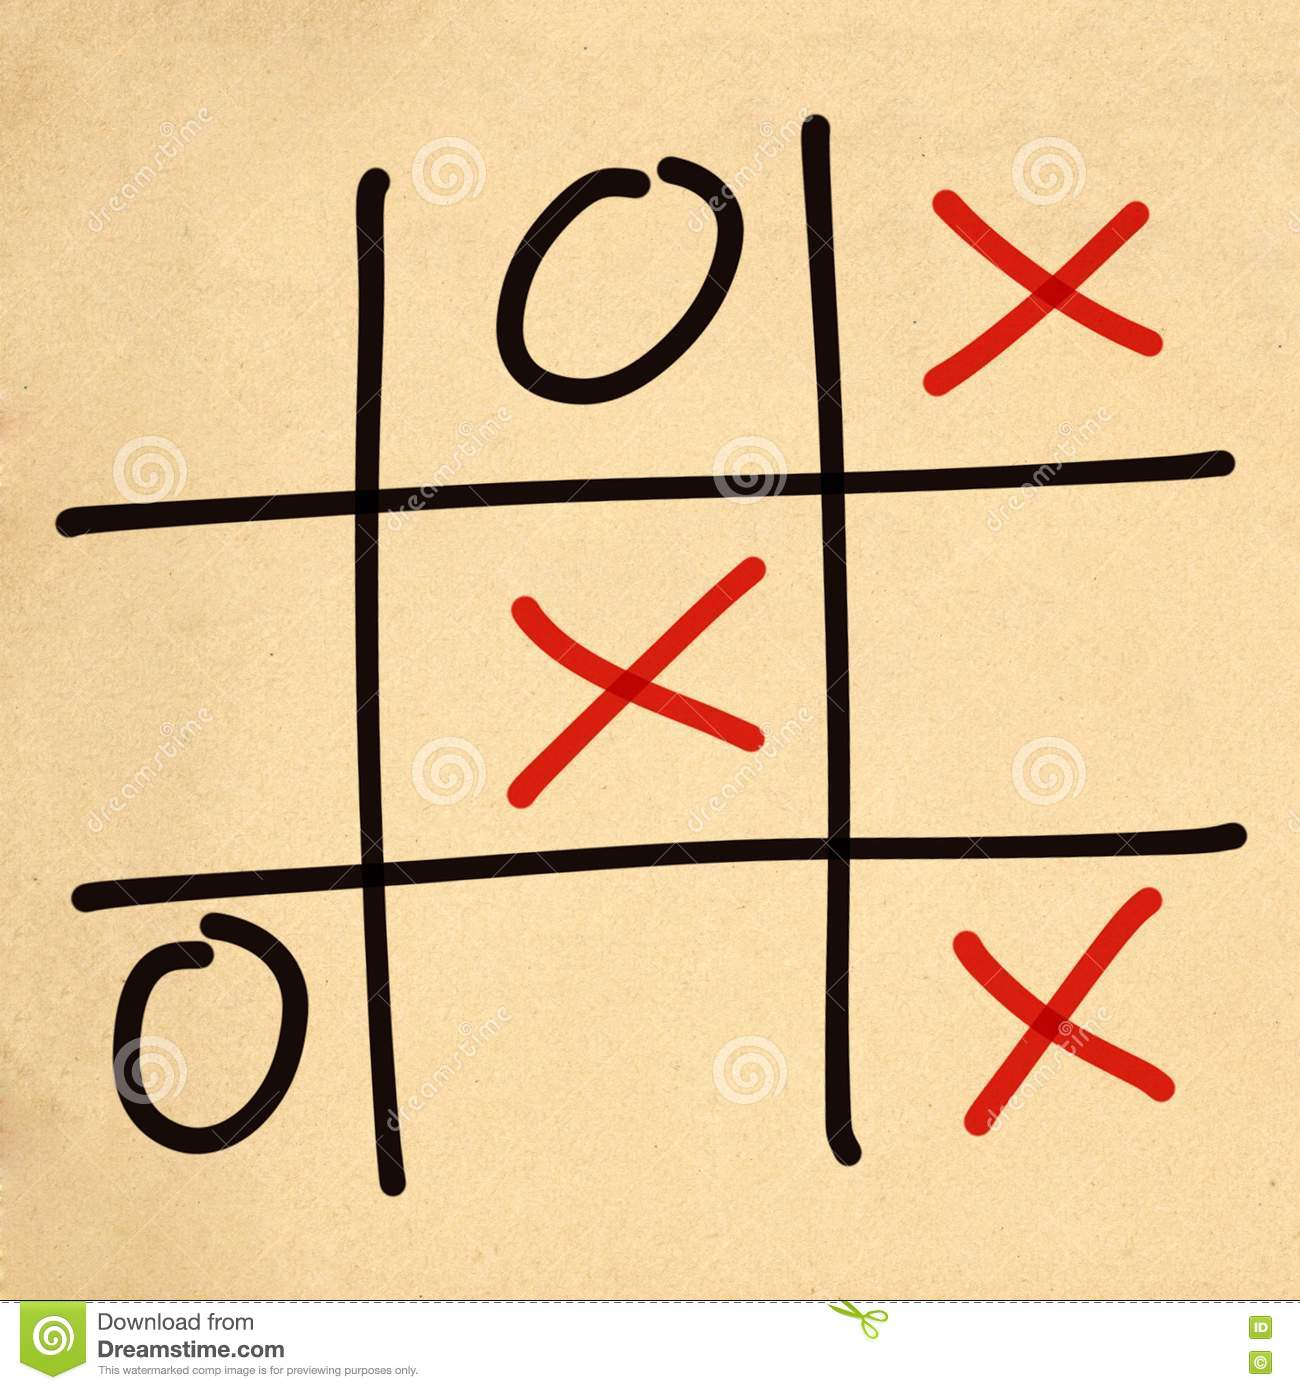 Illustration Tic Tac Toe XO Game Stock Illustration - Image: 75742331